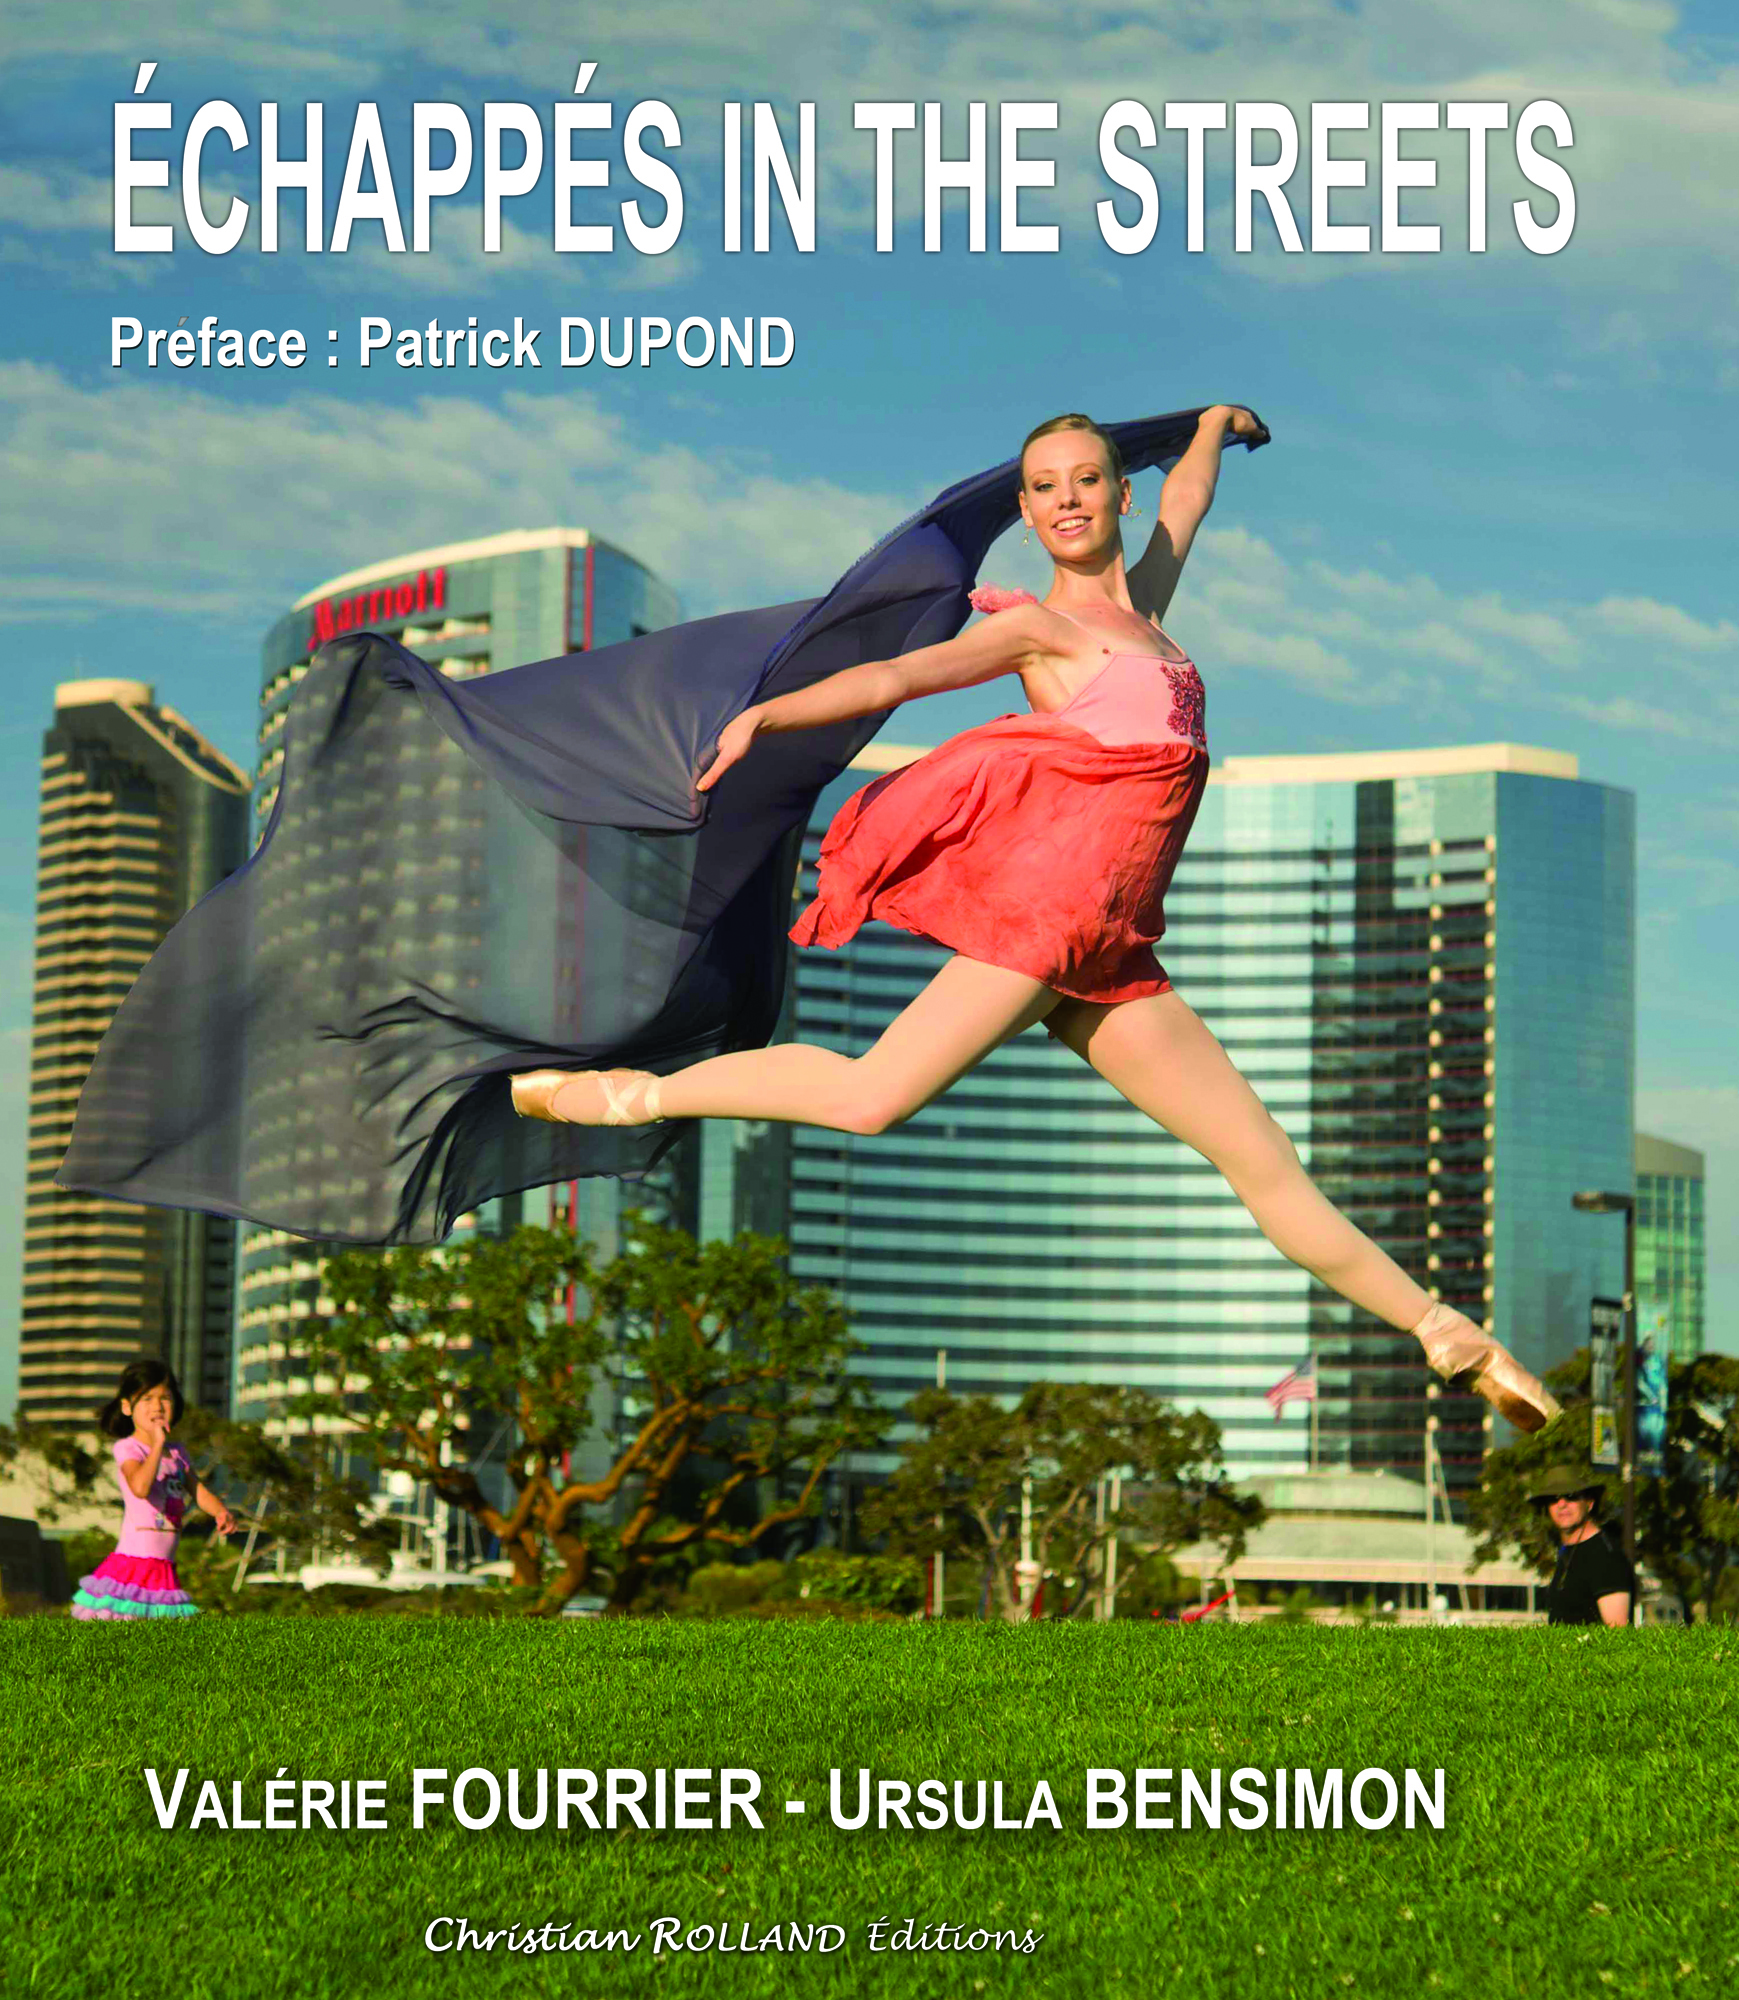 ECHAPPES IN THE STREETS